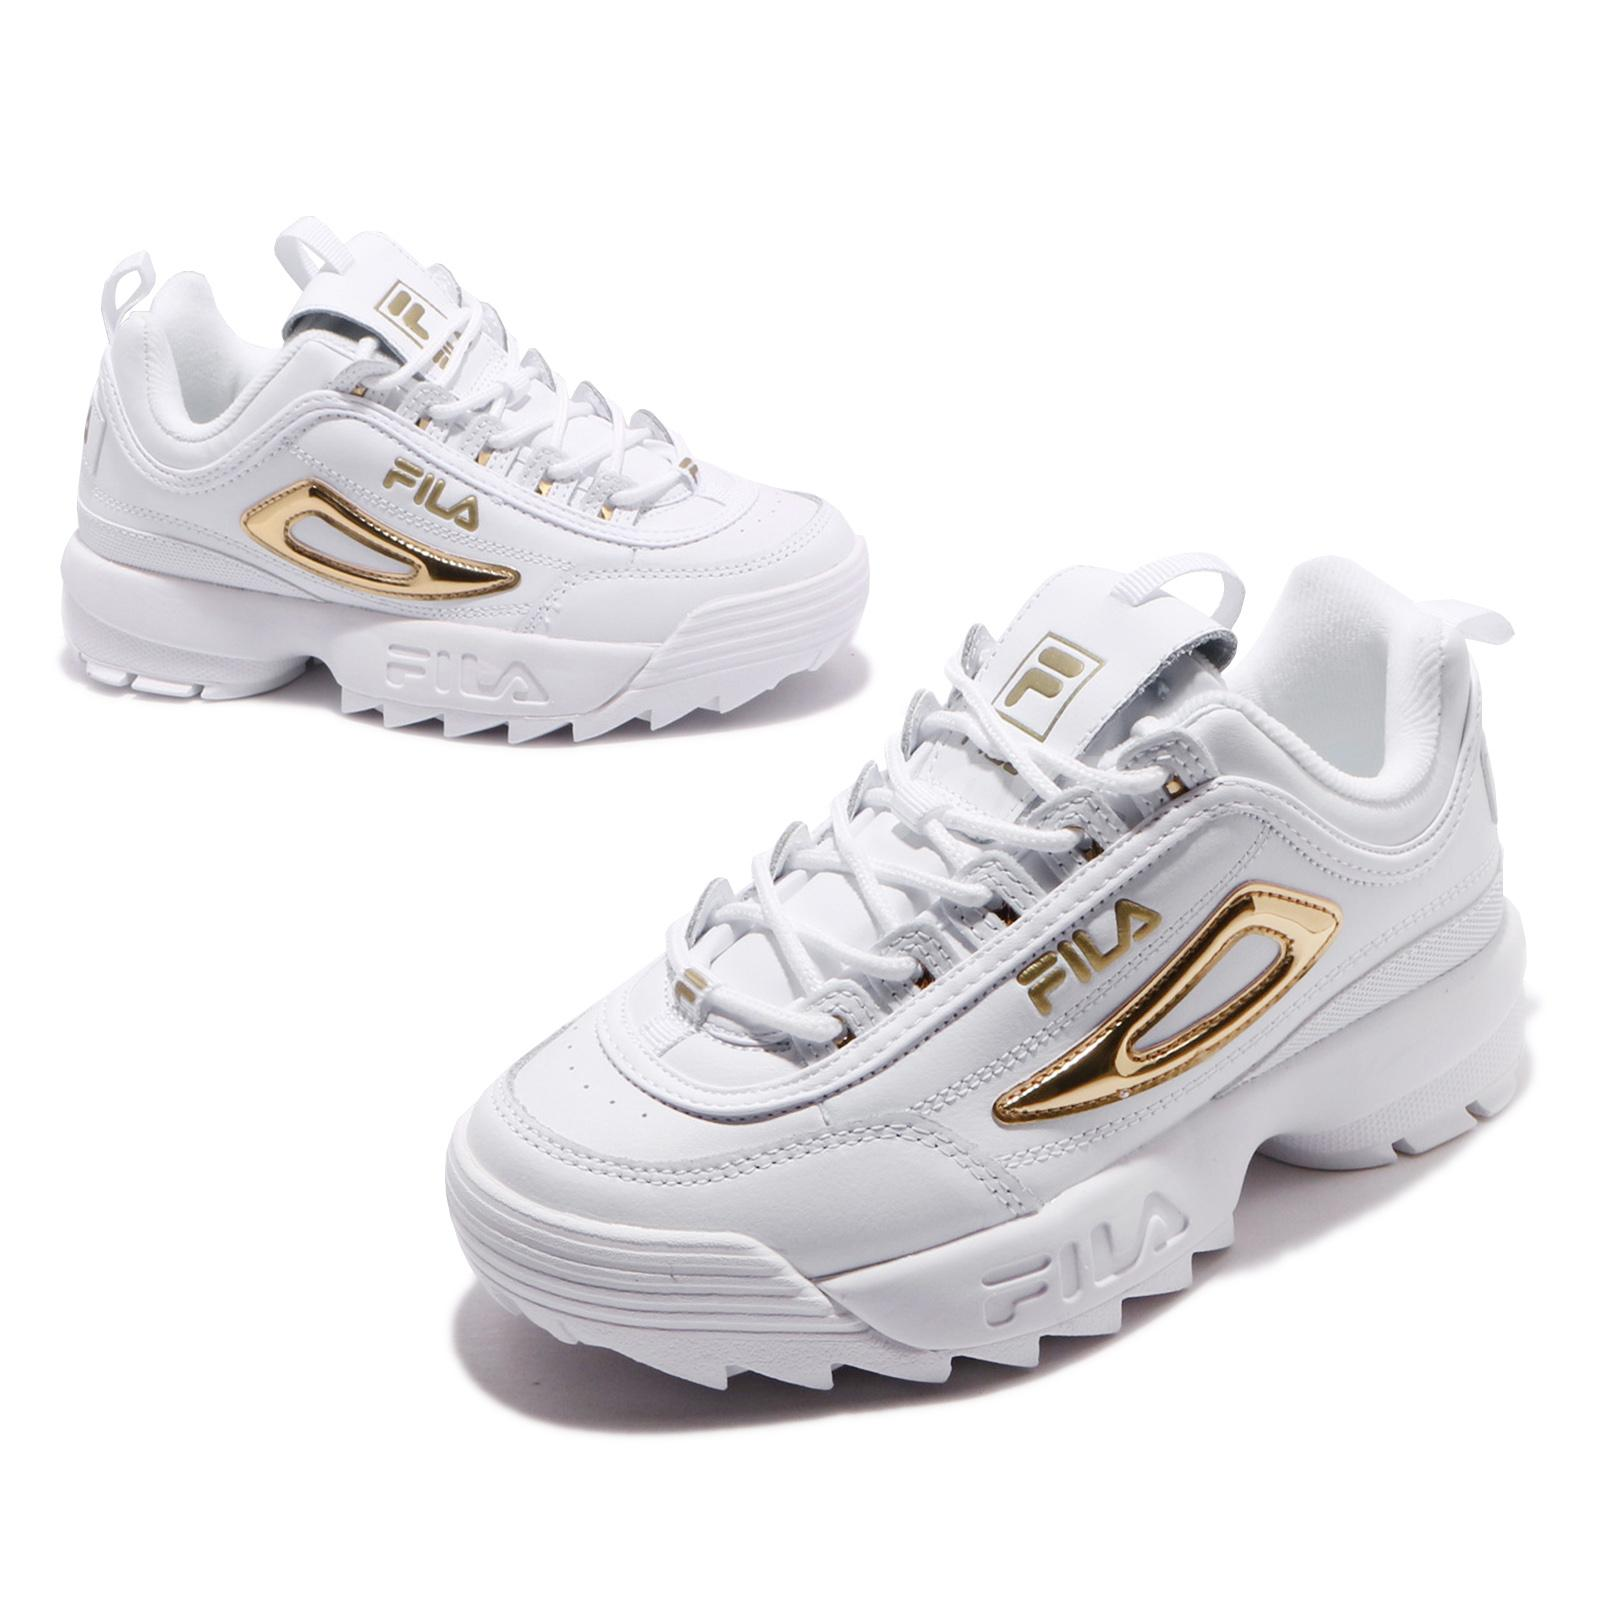 fila with gold